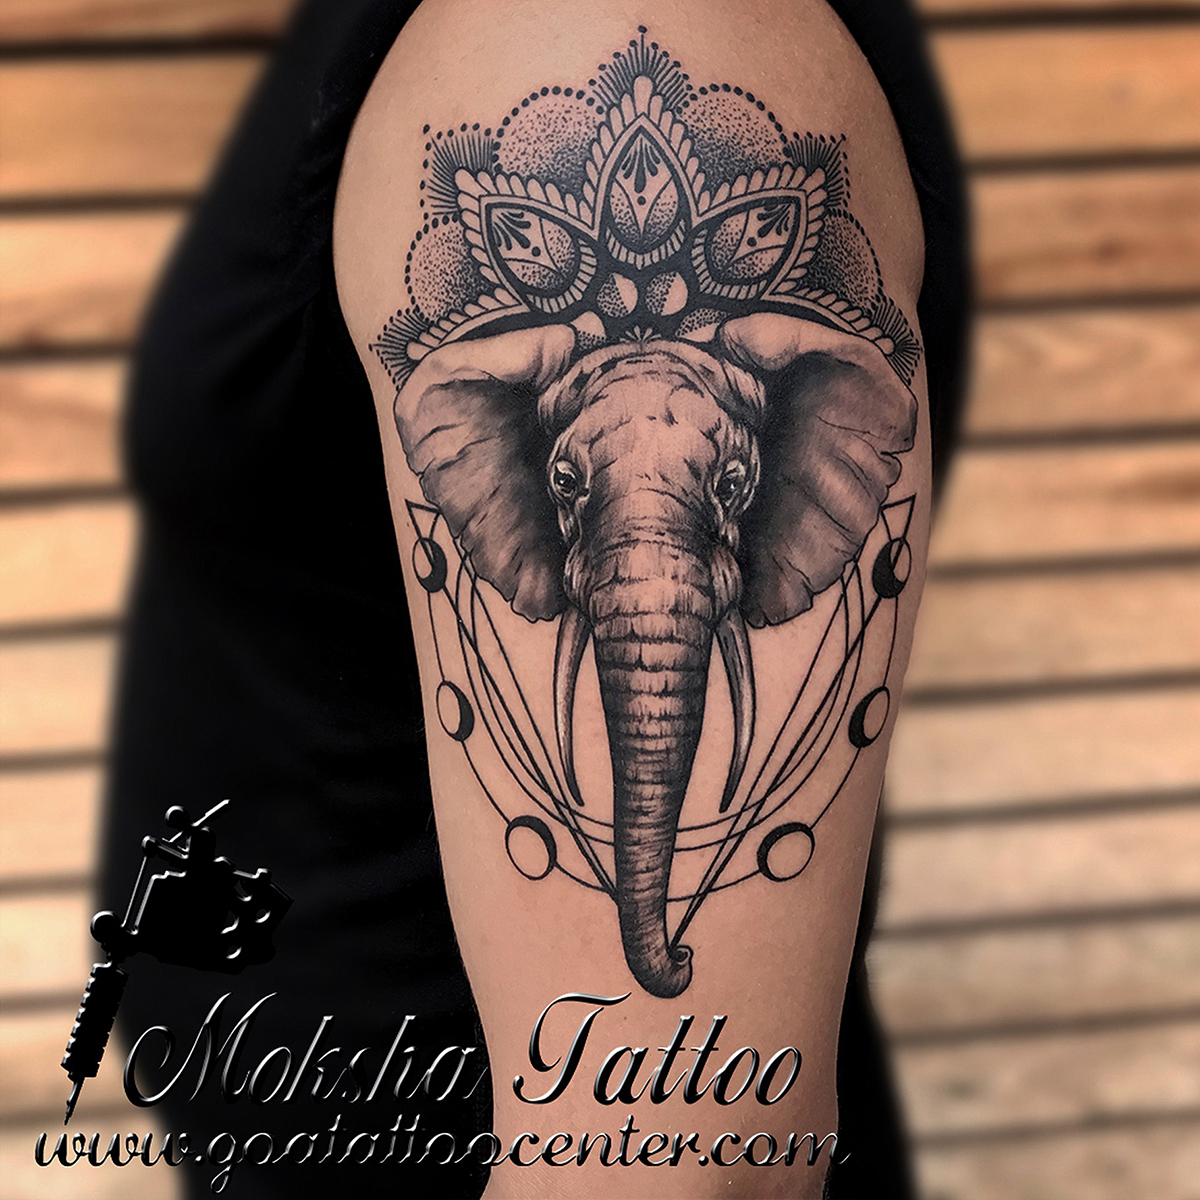 Best Tattoo Artists And Studio Of India With Safe Tattoo: Geometric Elephant Tattoo Done By Mukesh Waghela At Moksha